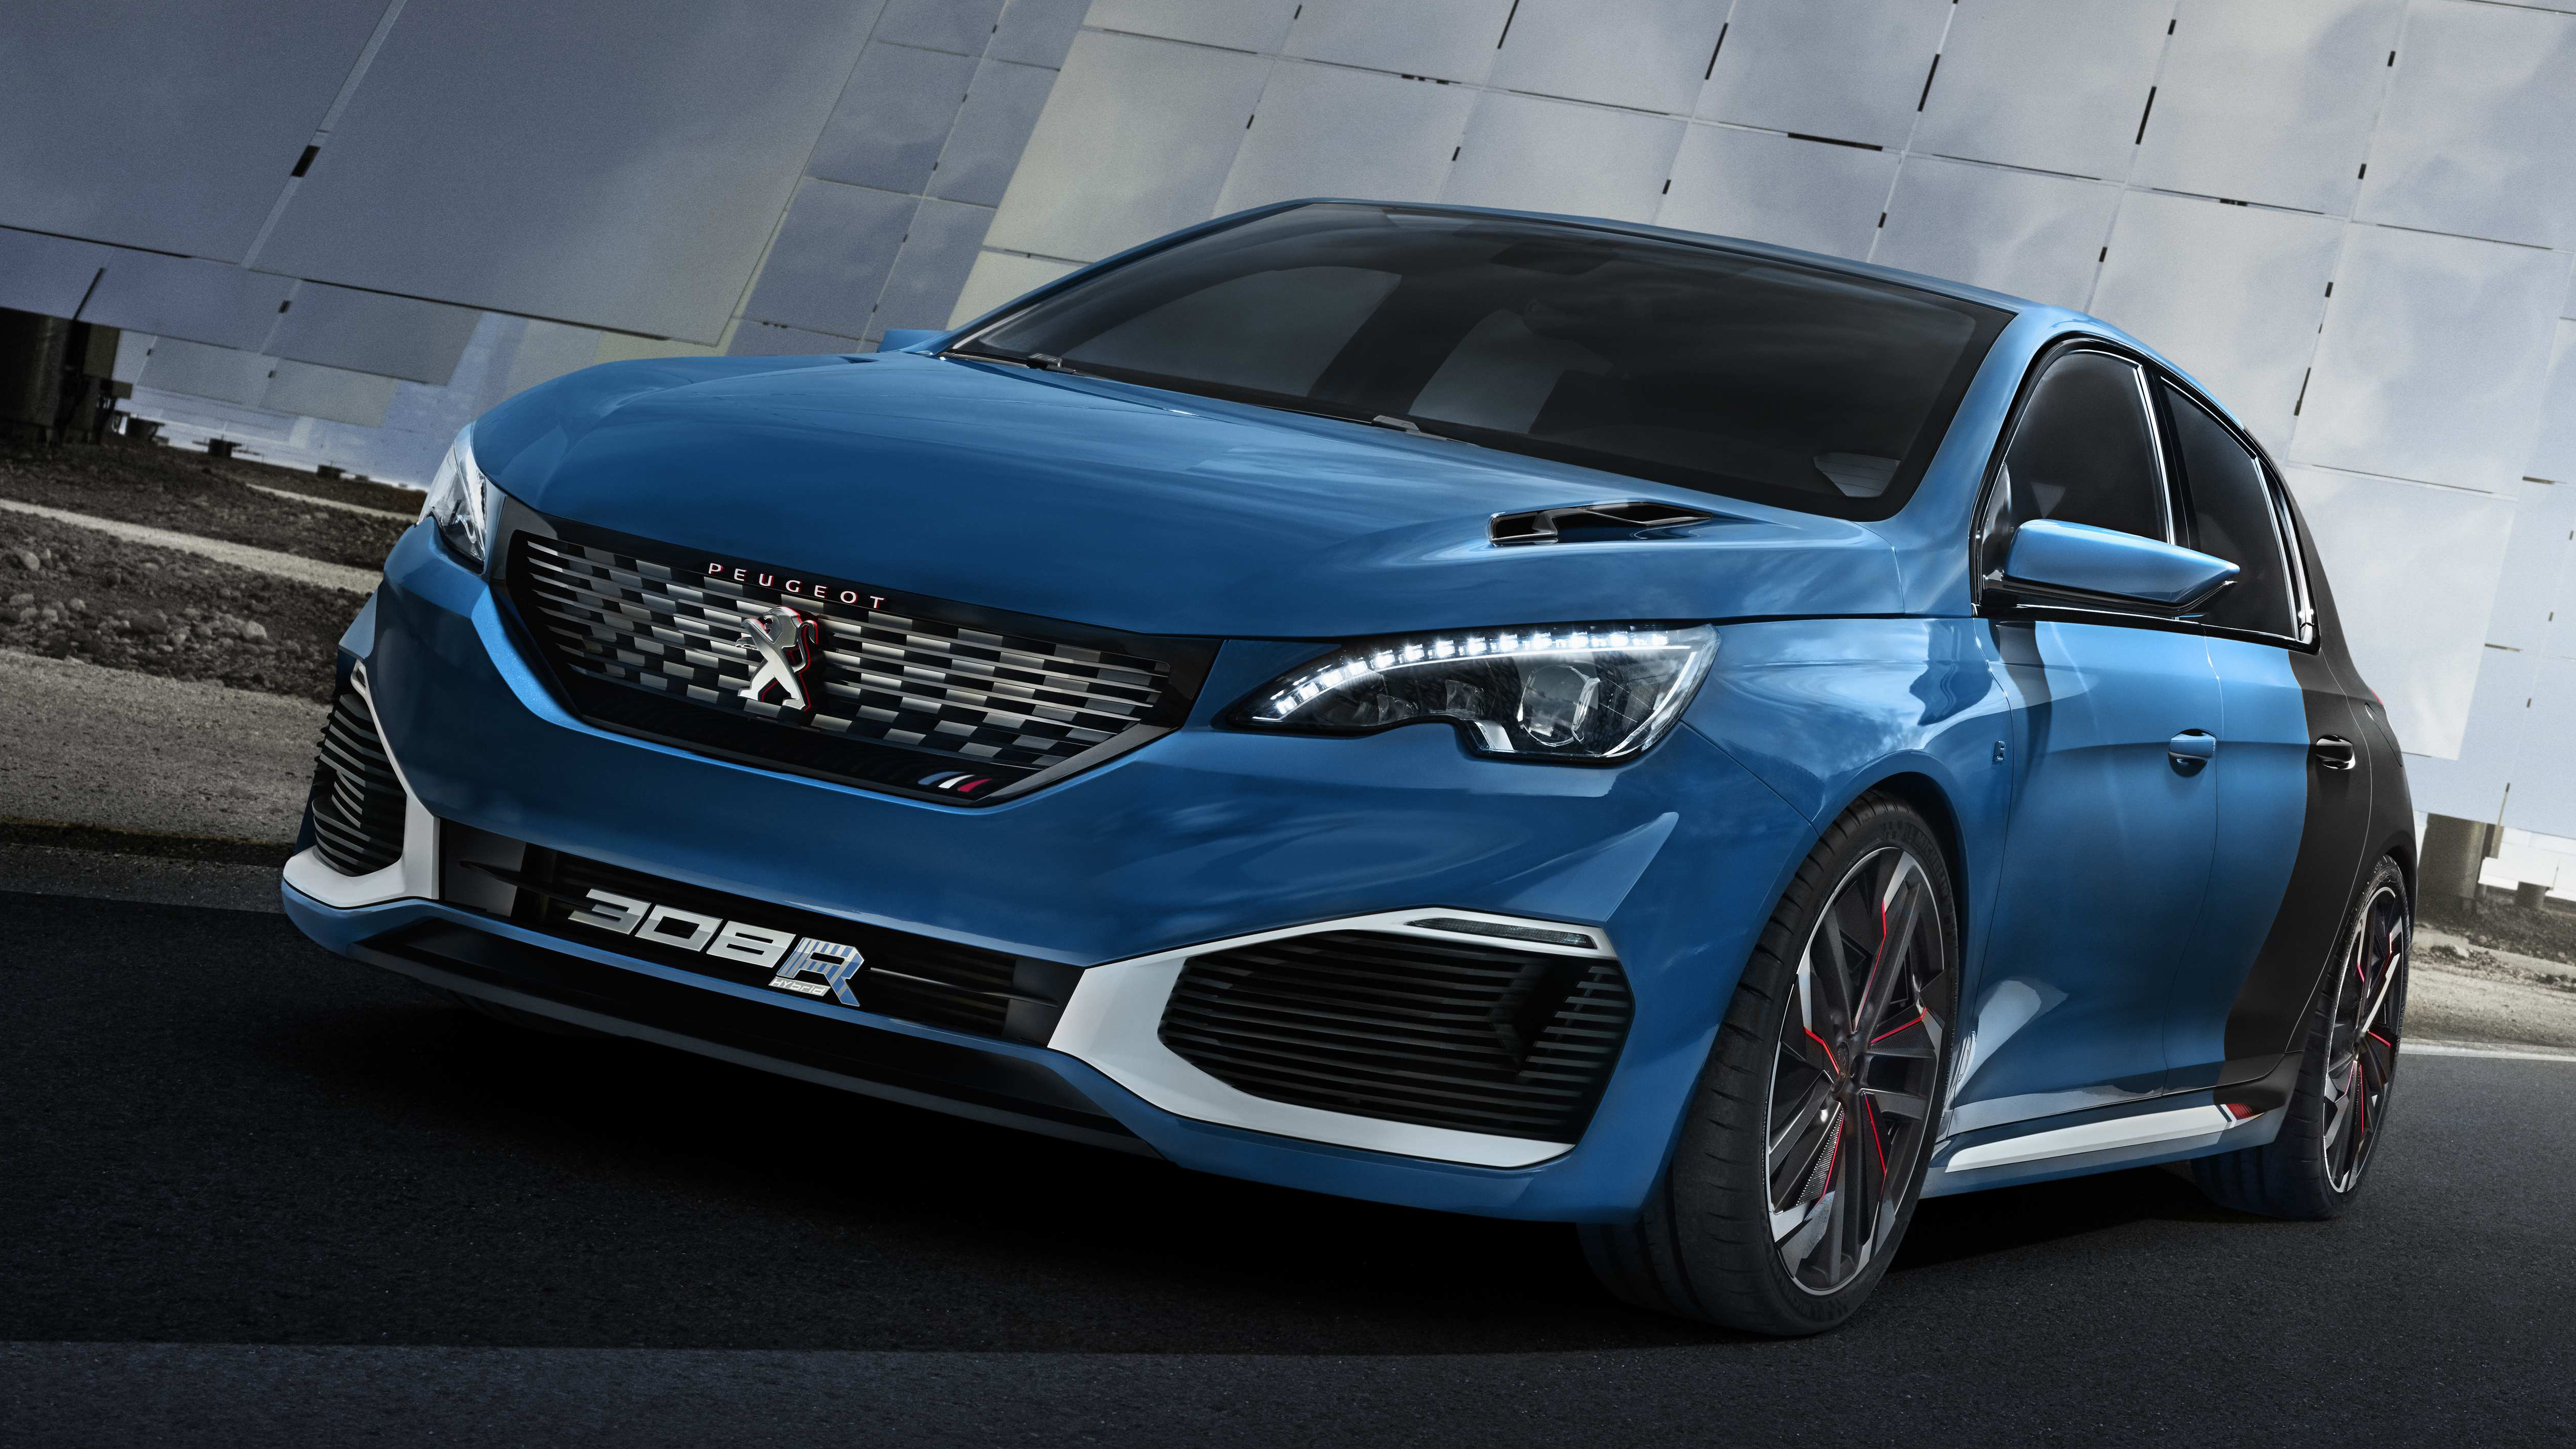 peugeot set to unveil 308 gti at goodwood this month. Black Bedroom Furniture Sets. Home Design Ideas